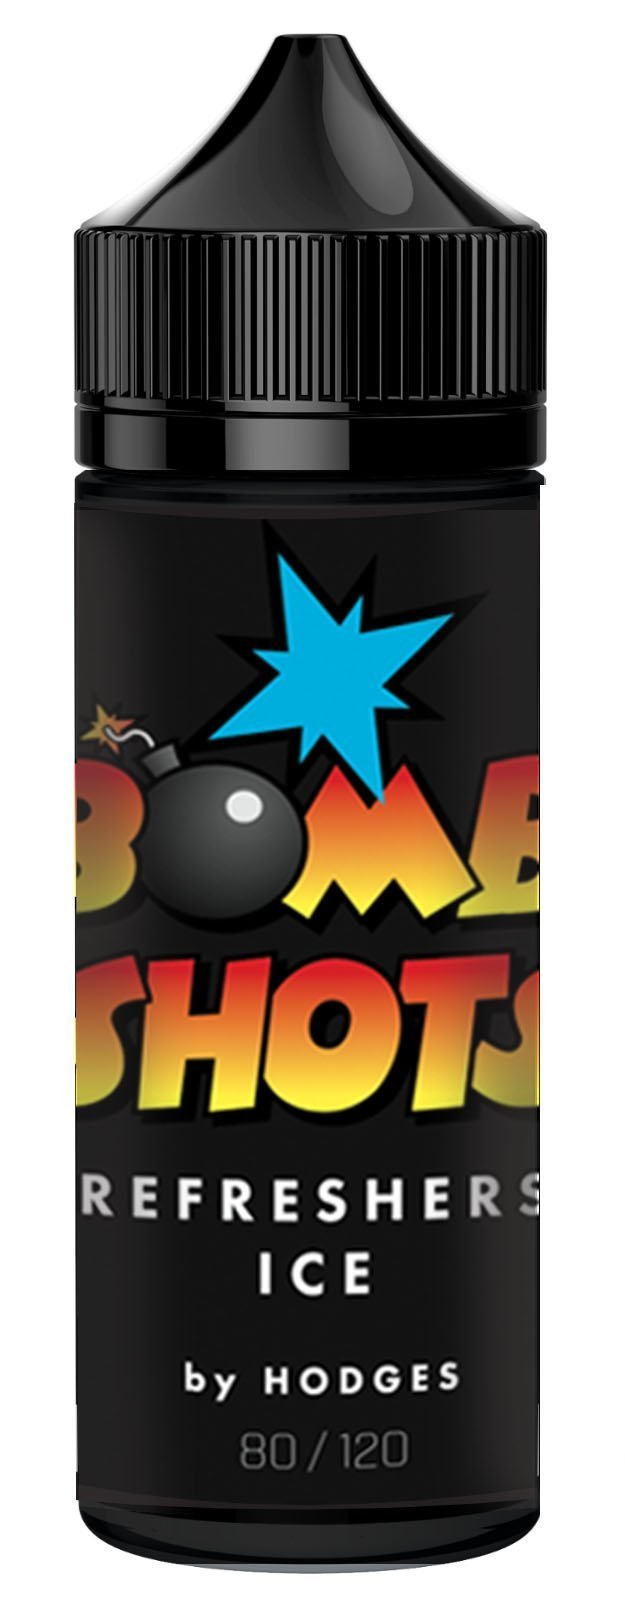 Refreshers Ice Bomb Shots By Hodges Short Fill E-Liquid (80ml)120ml Hodges e-Juice hodges-home-brew